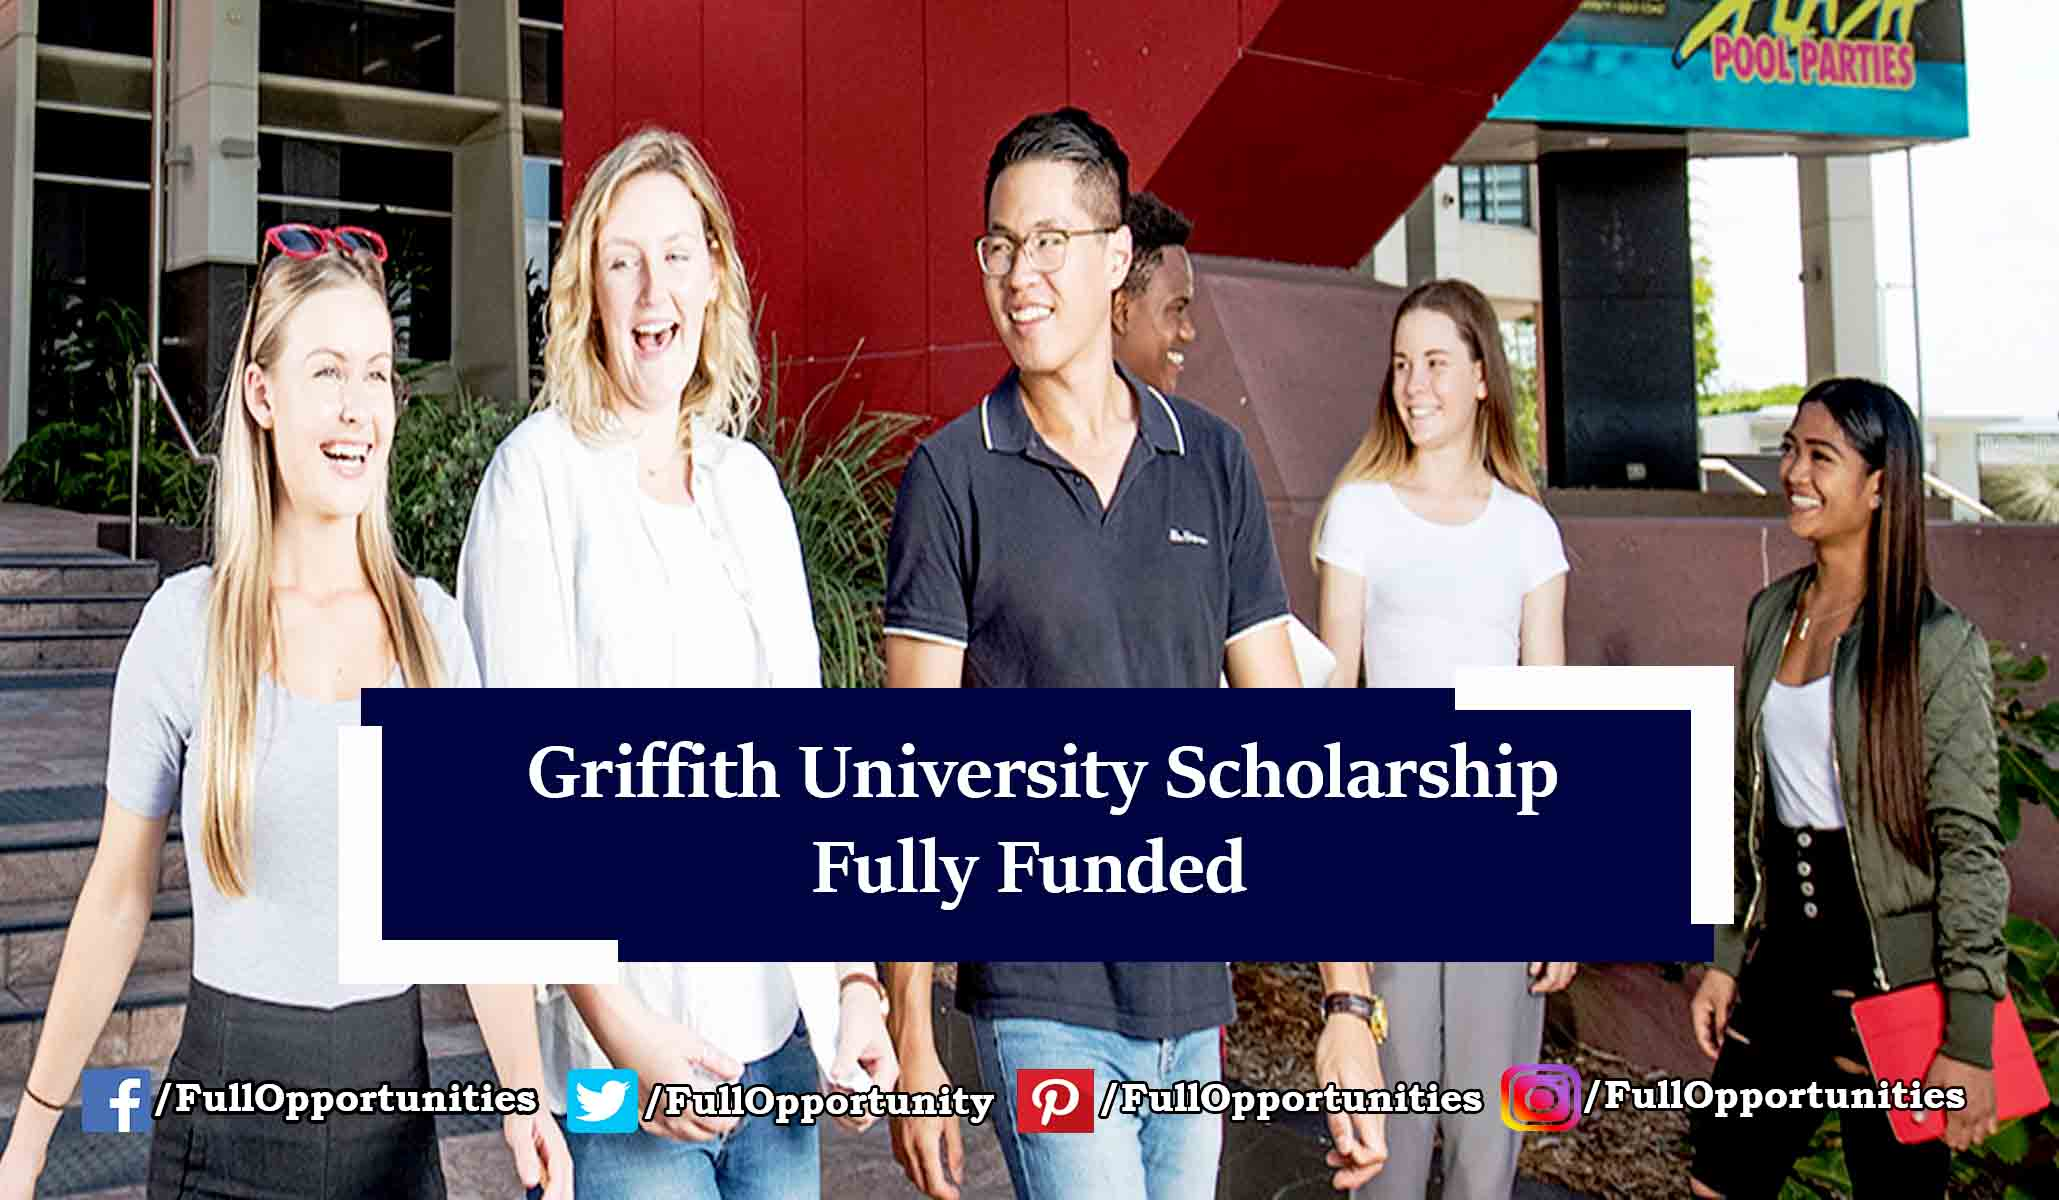 Griffith University Scholarship in Australia 2019-2020